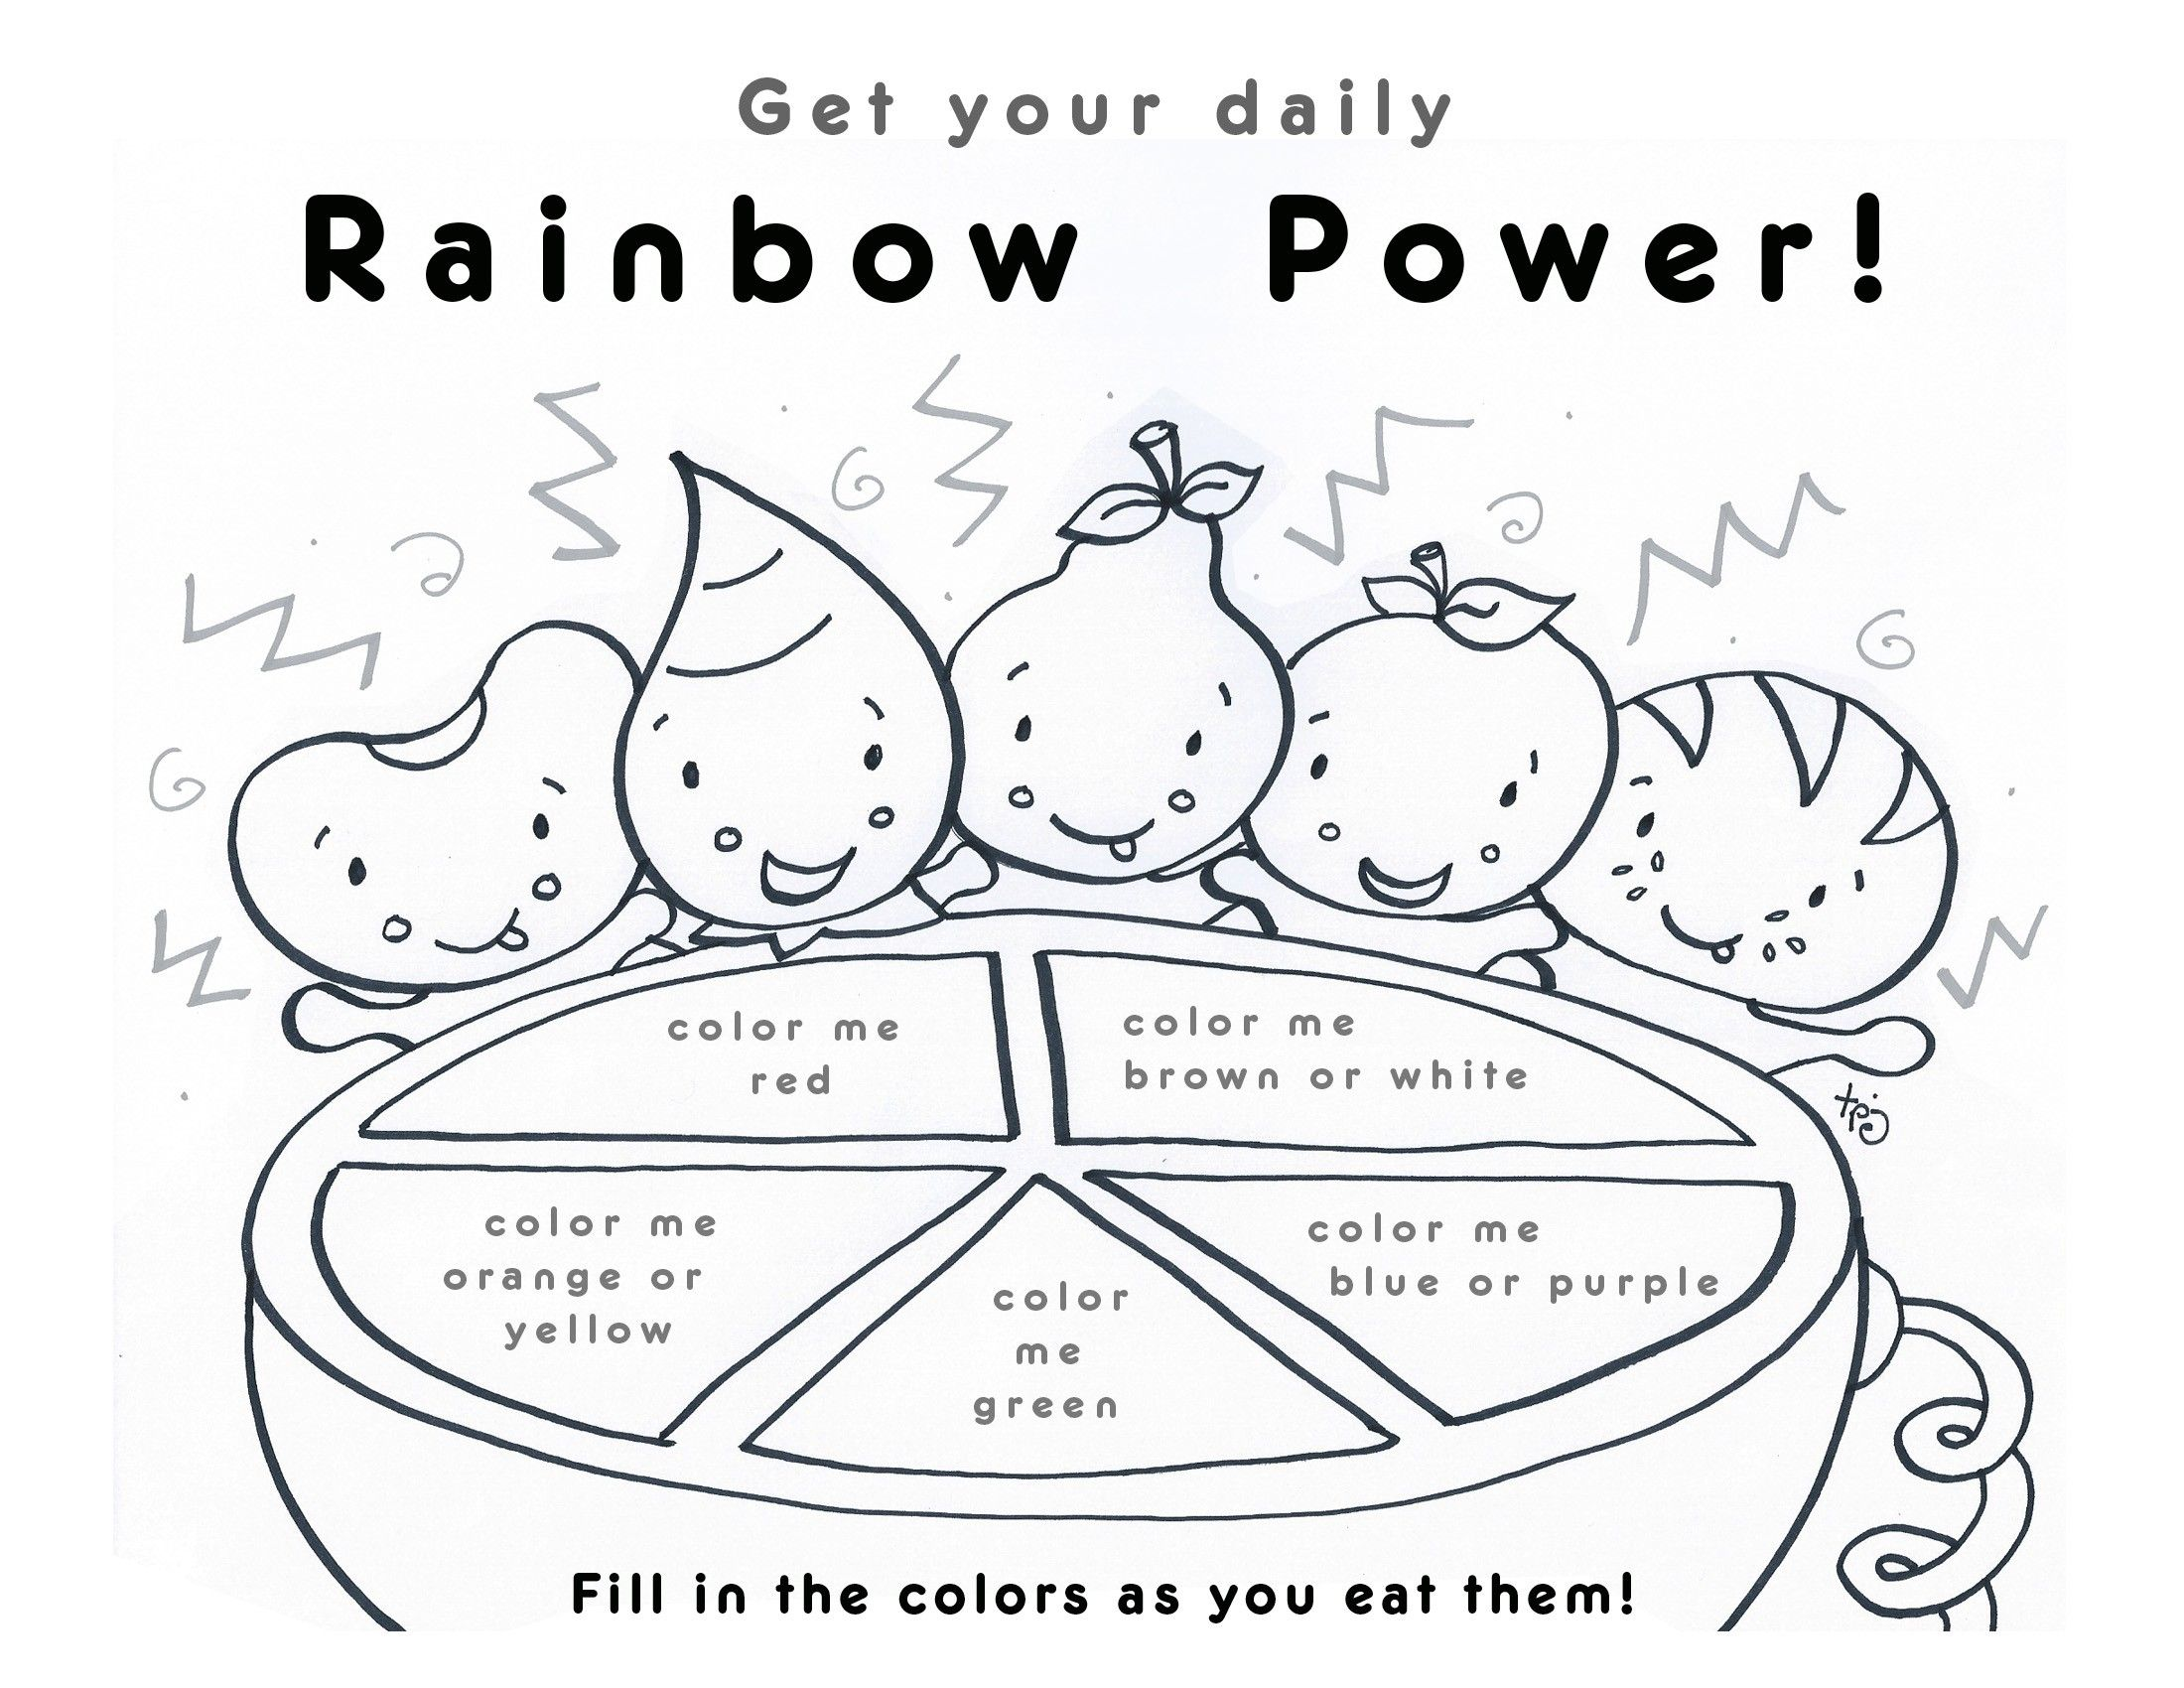 Healthy Food Coloring Pages Healthy Foods Coloring Pages Fresh Food New Bitslice Davemelillo Com Food Coloring Pages Coloring Pages Free Coloring Pages